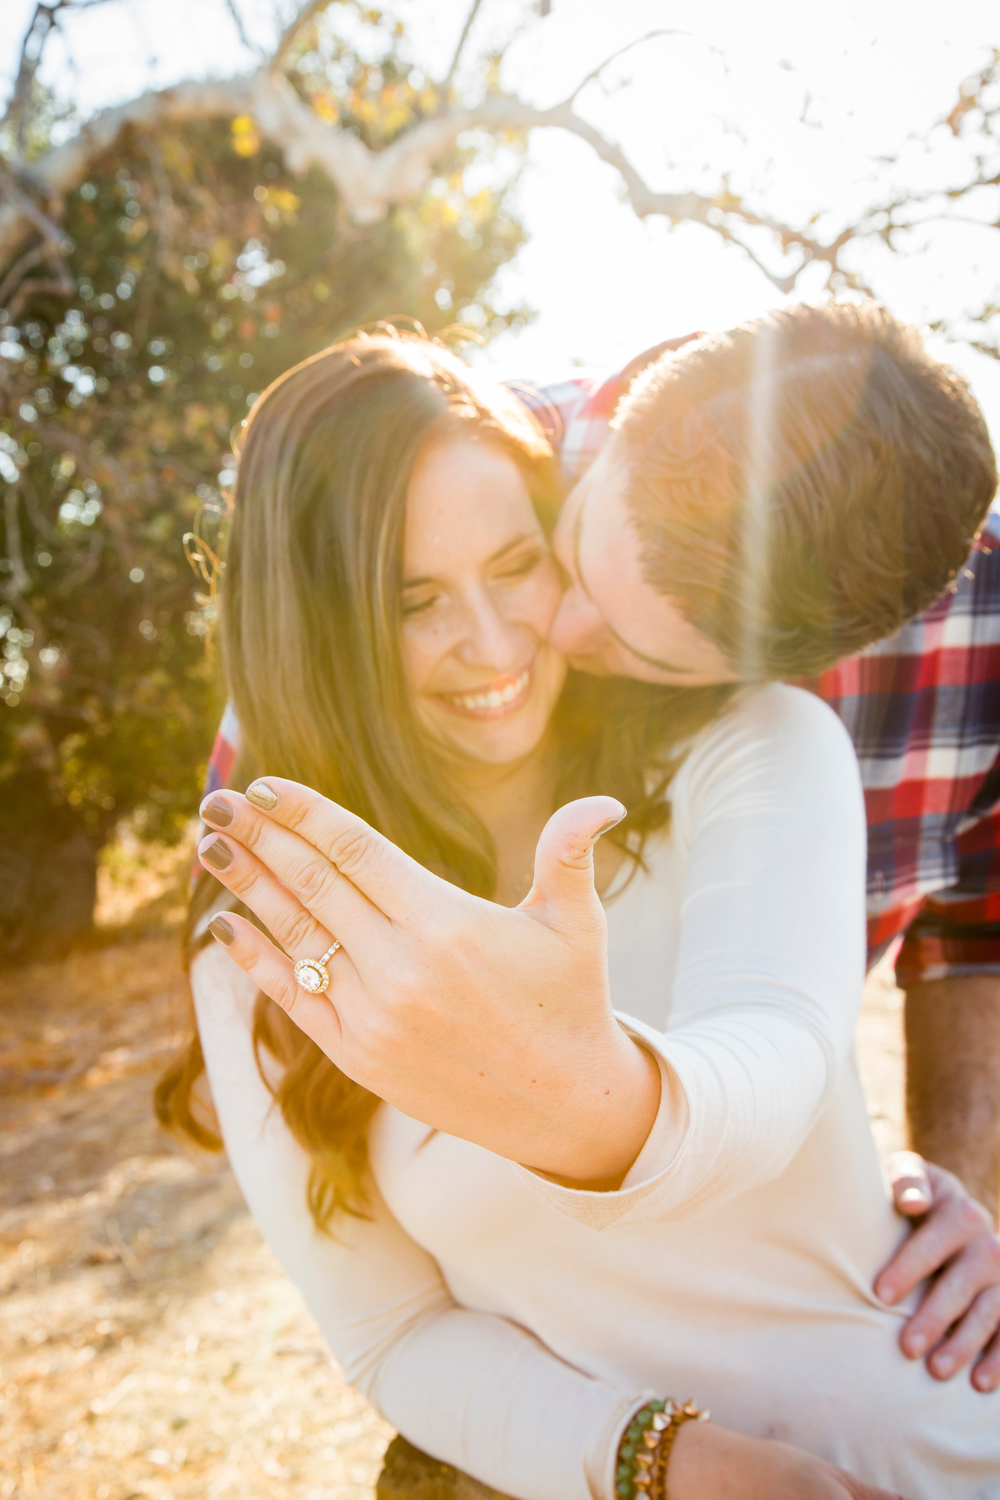 Chris_Megan_Engagement_2014_BKEENEPHOTO-74.jpg